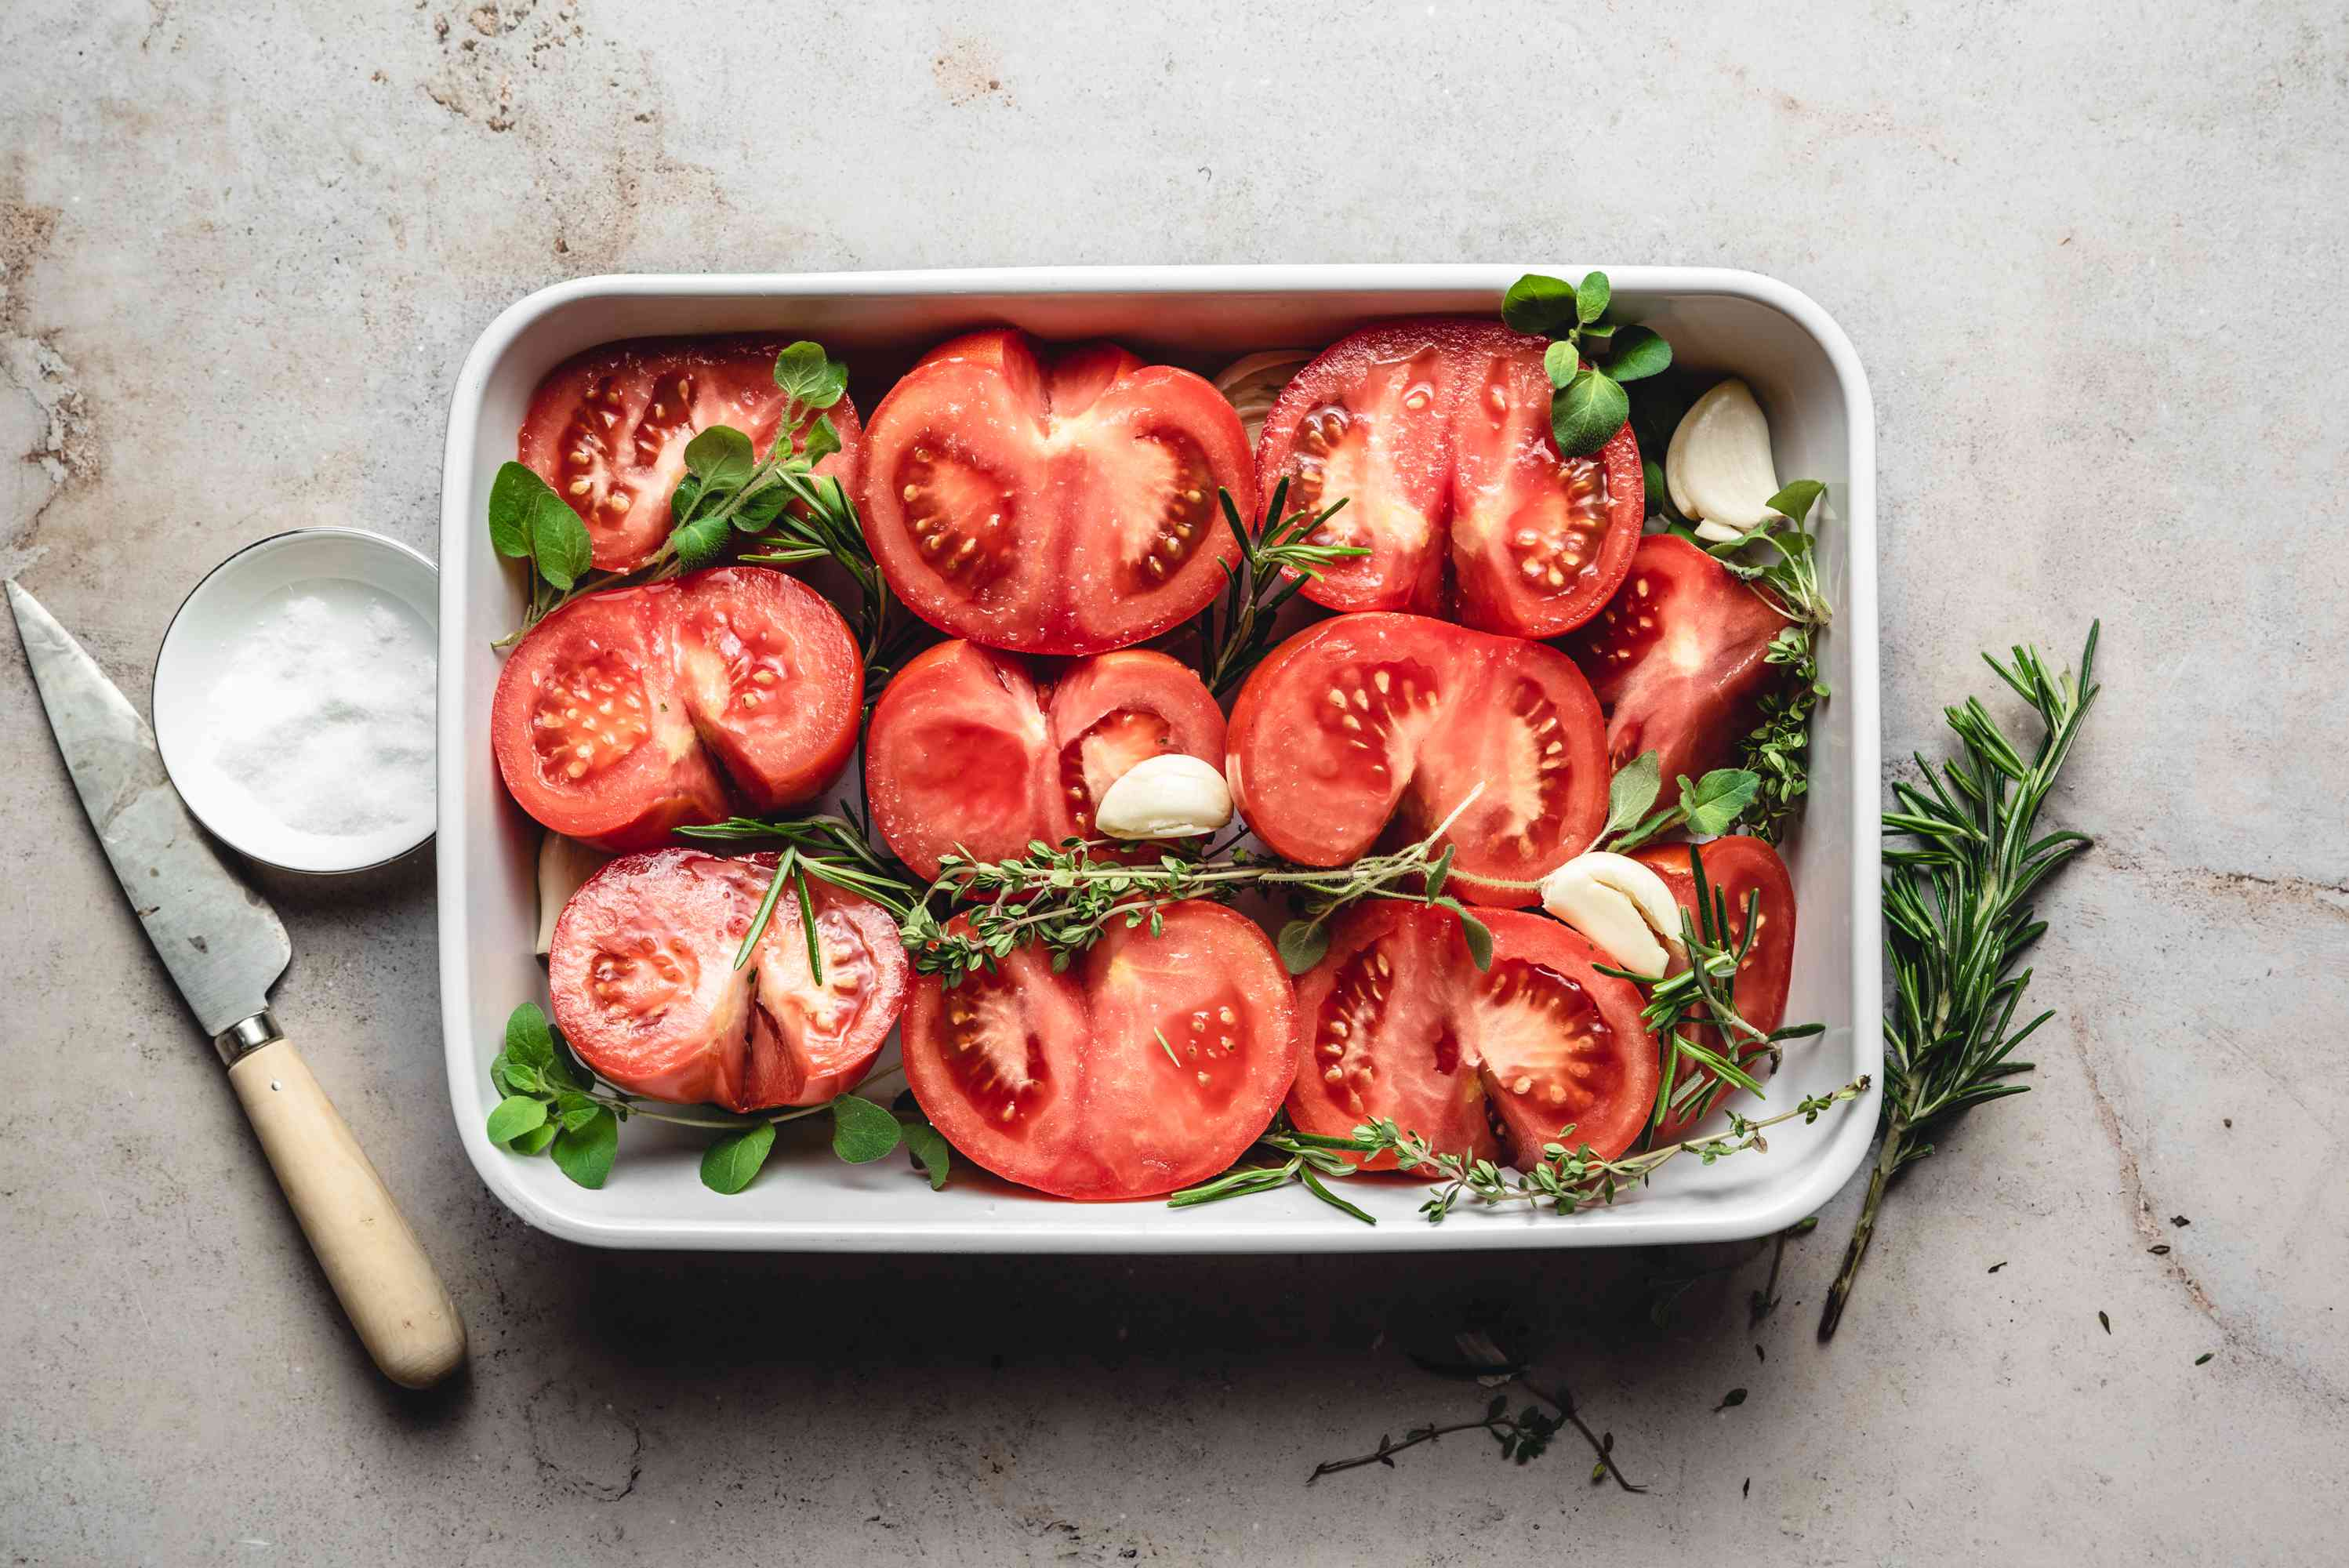 tomatoes with salt, herbs and garlic in a baking dish